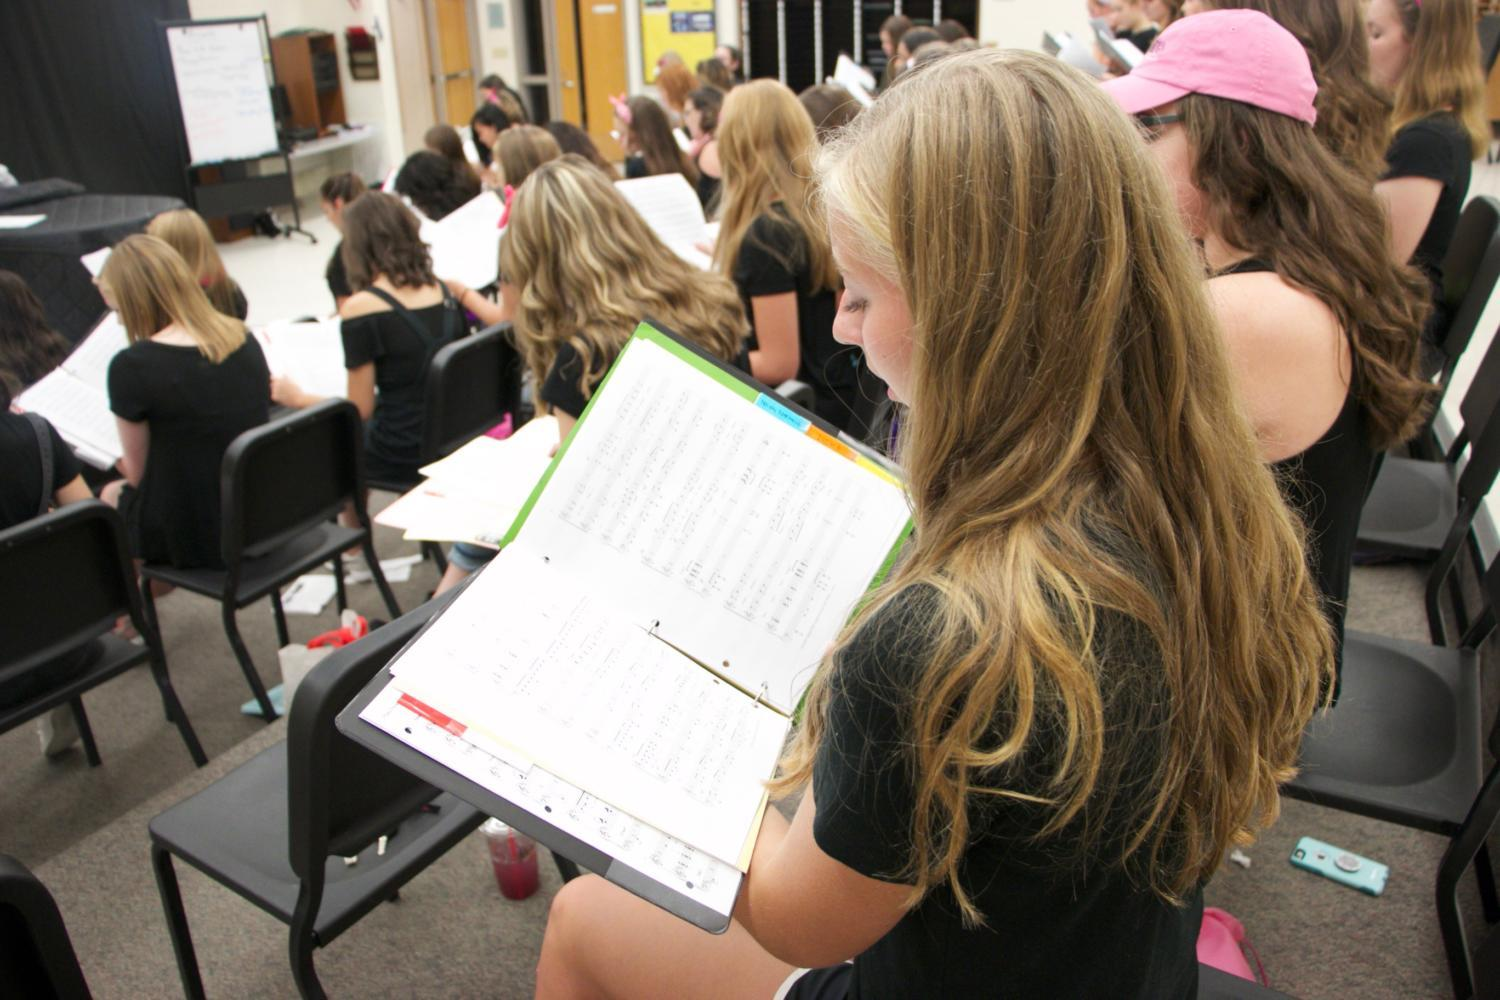 Junior Julia Schmitz looks down at her music at an Accents rehearsal. This rehearsal was in preparation for the upcoming fall concert on Oct. 4.